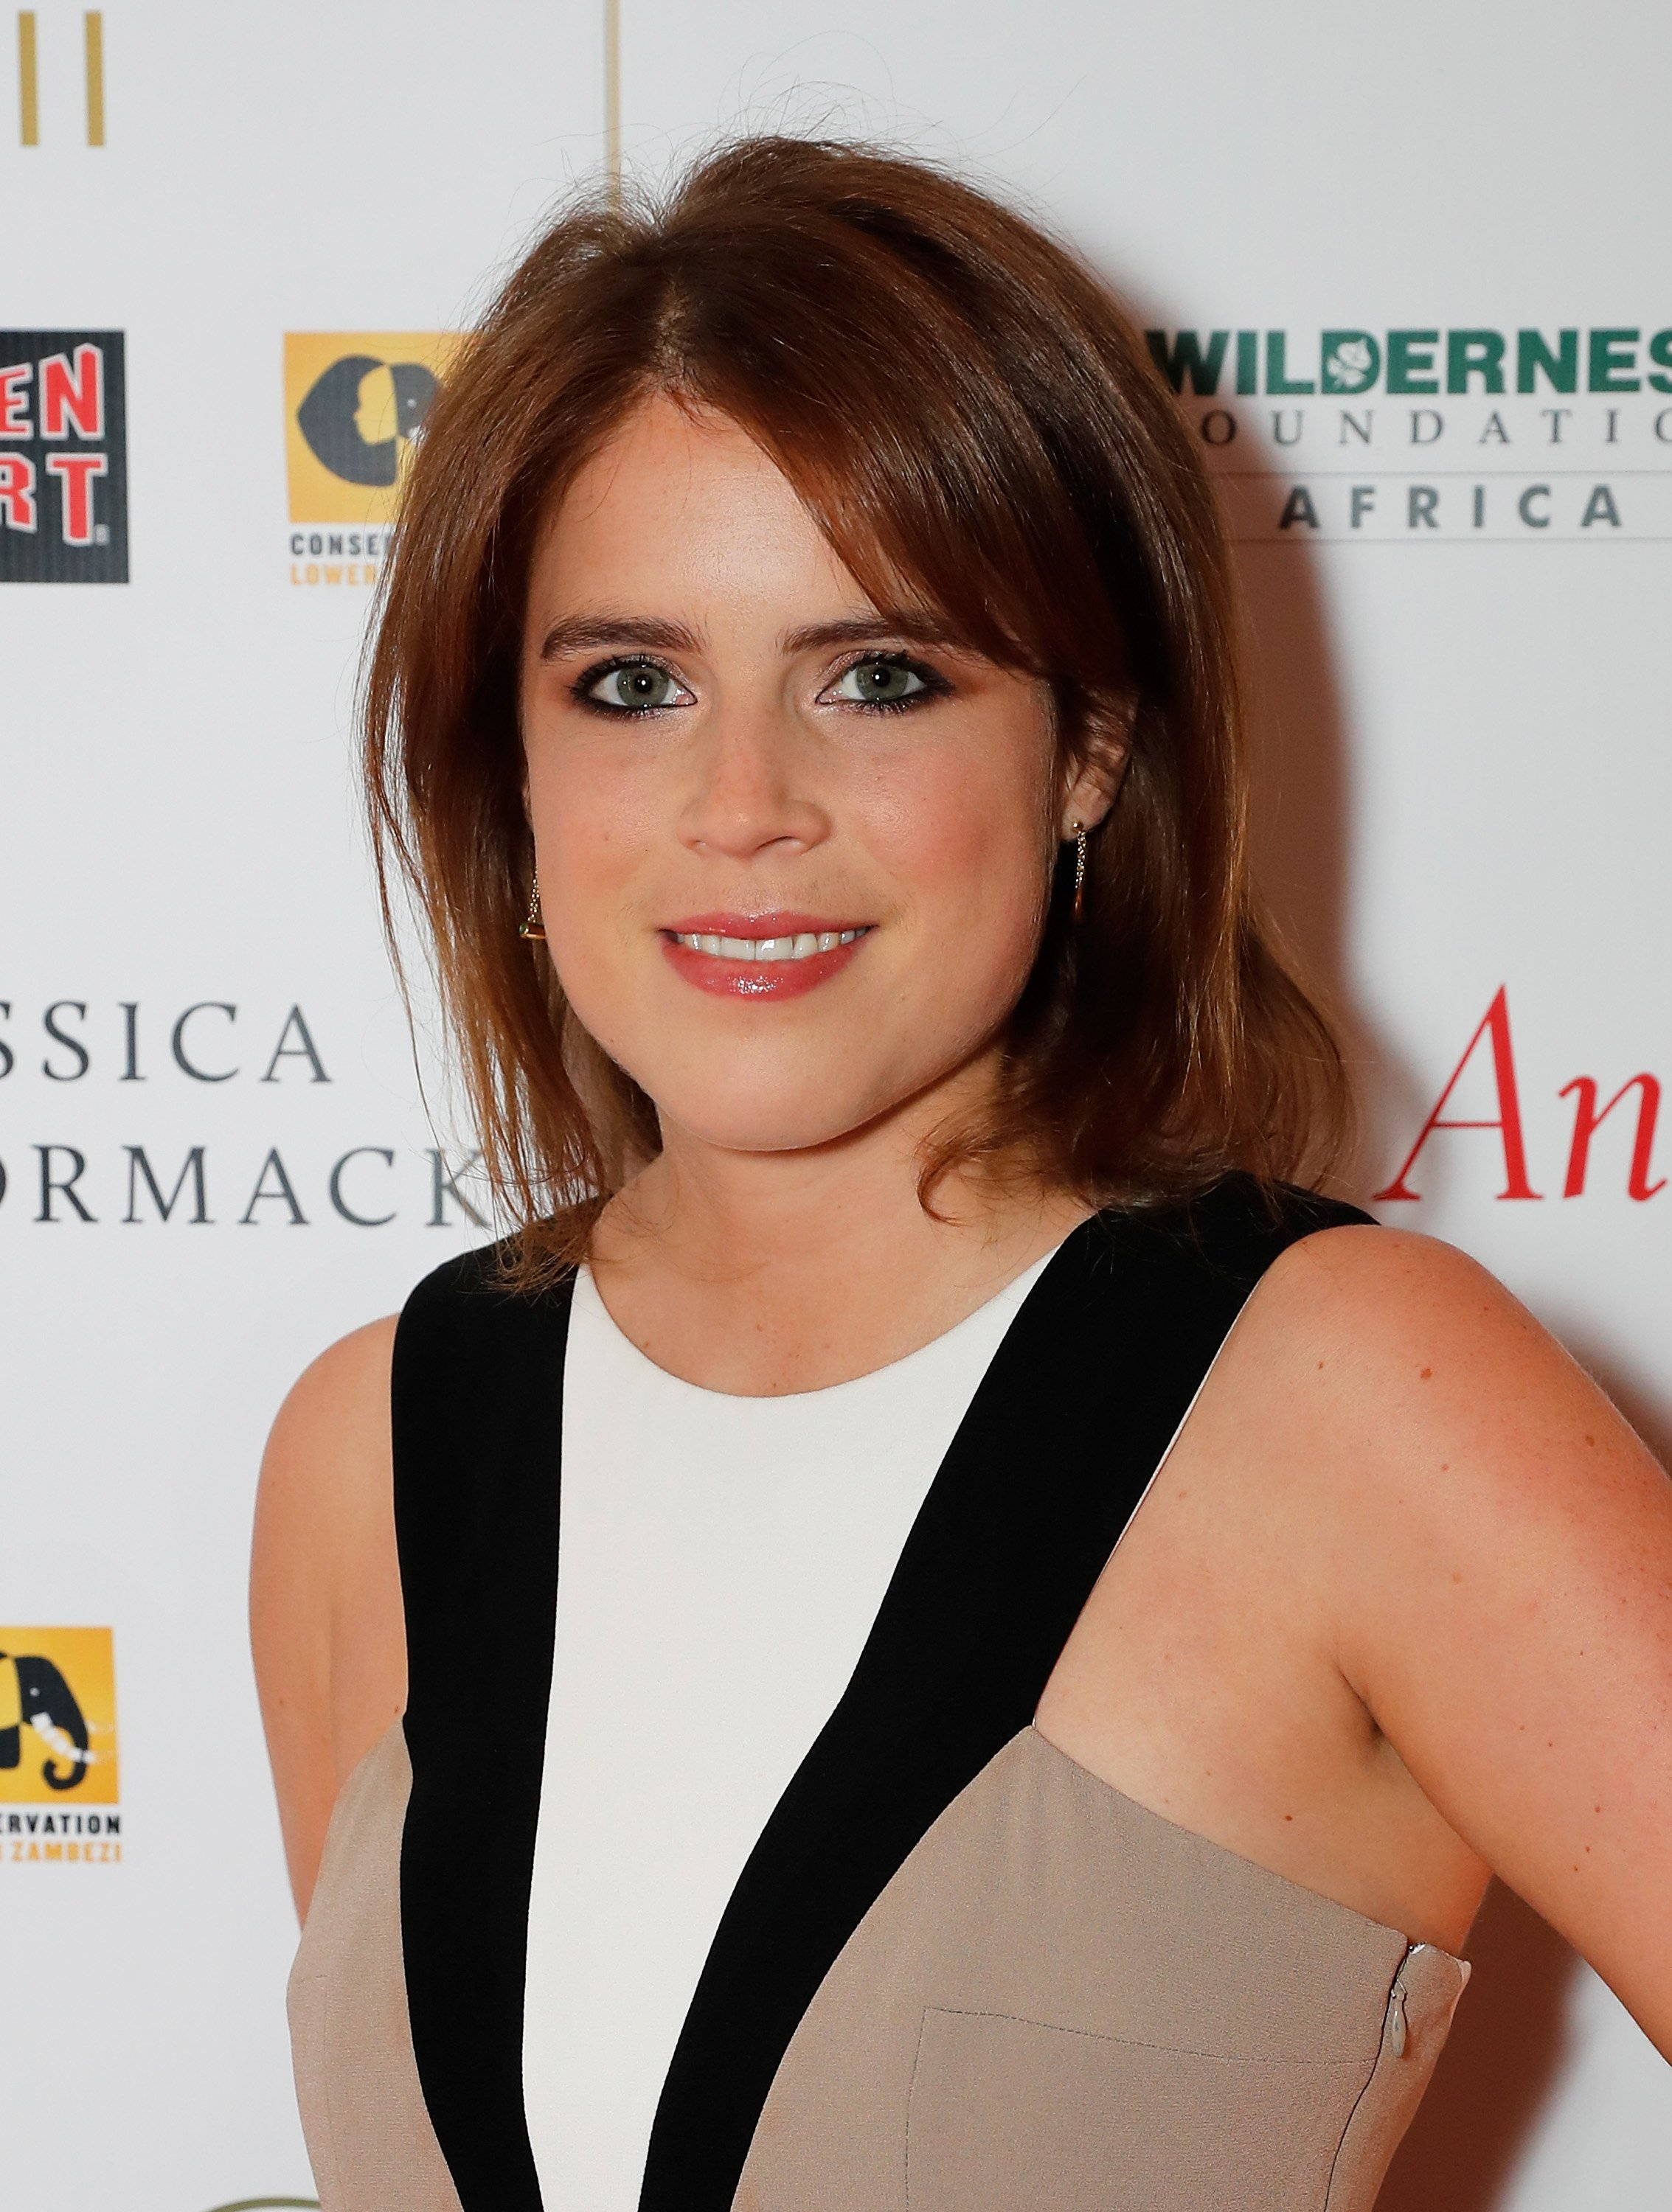 Princess Eugenie at The Change II boxing fundraiser in 2017, London, England.   Photo: Getty Images